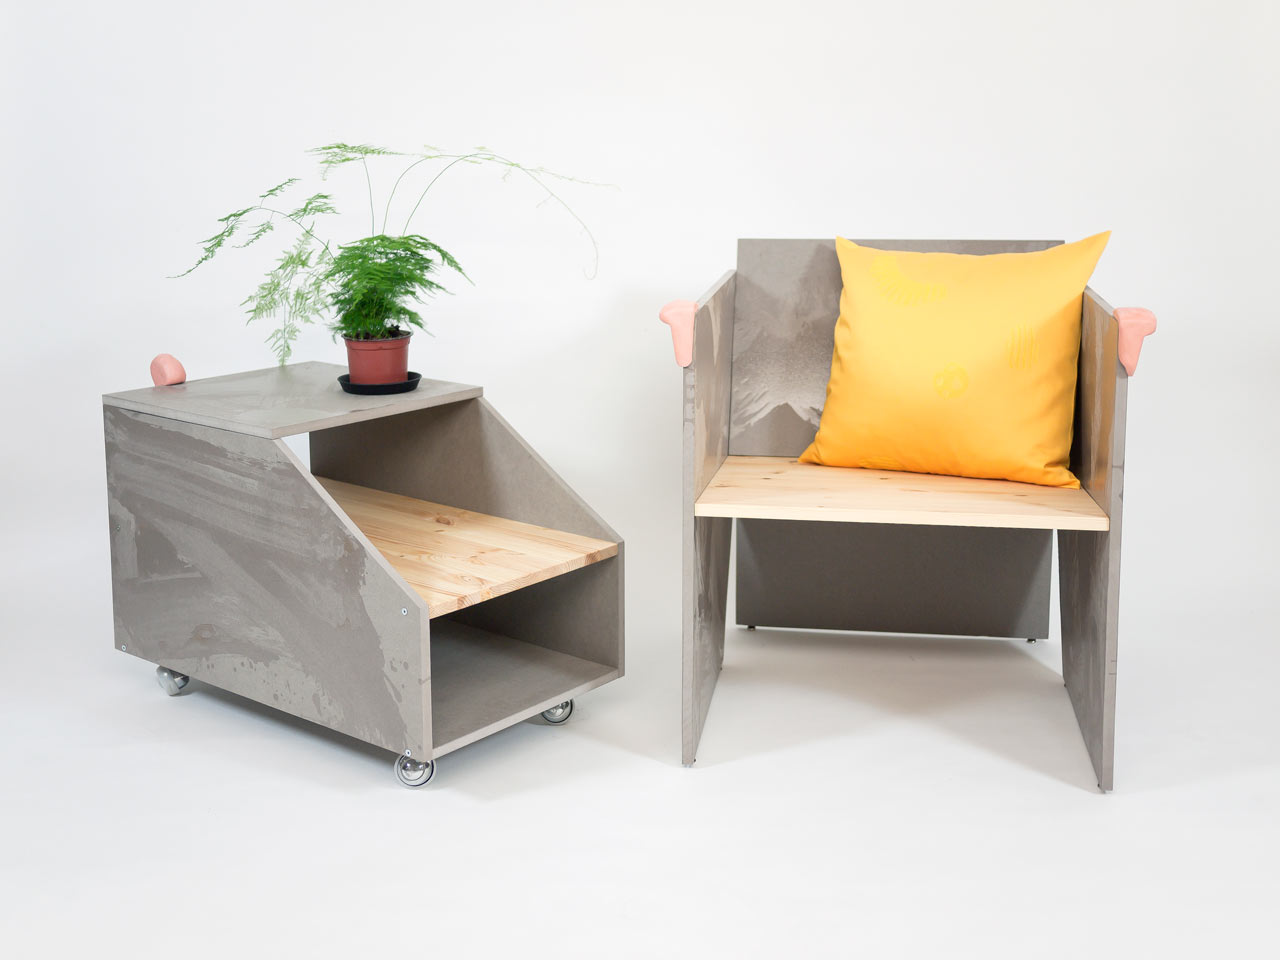 Furniture Handmade in 3 to 5 Minutes